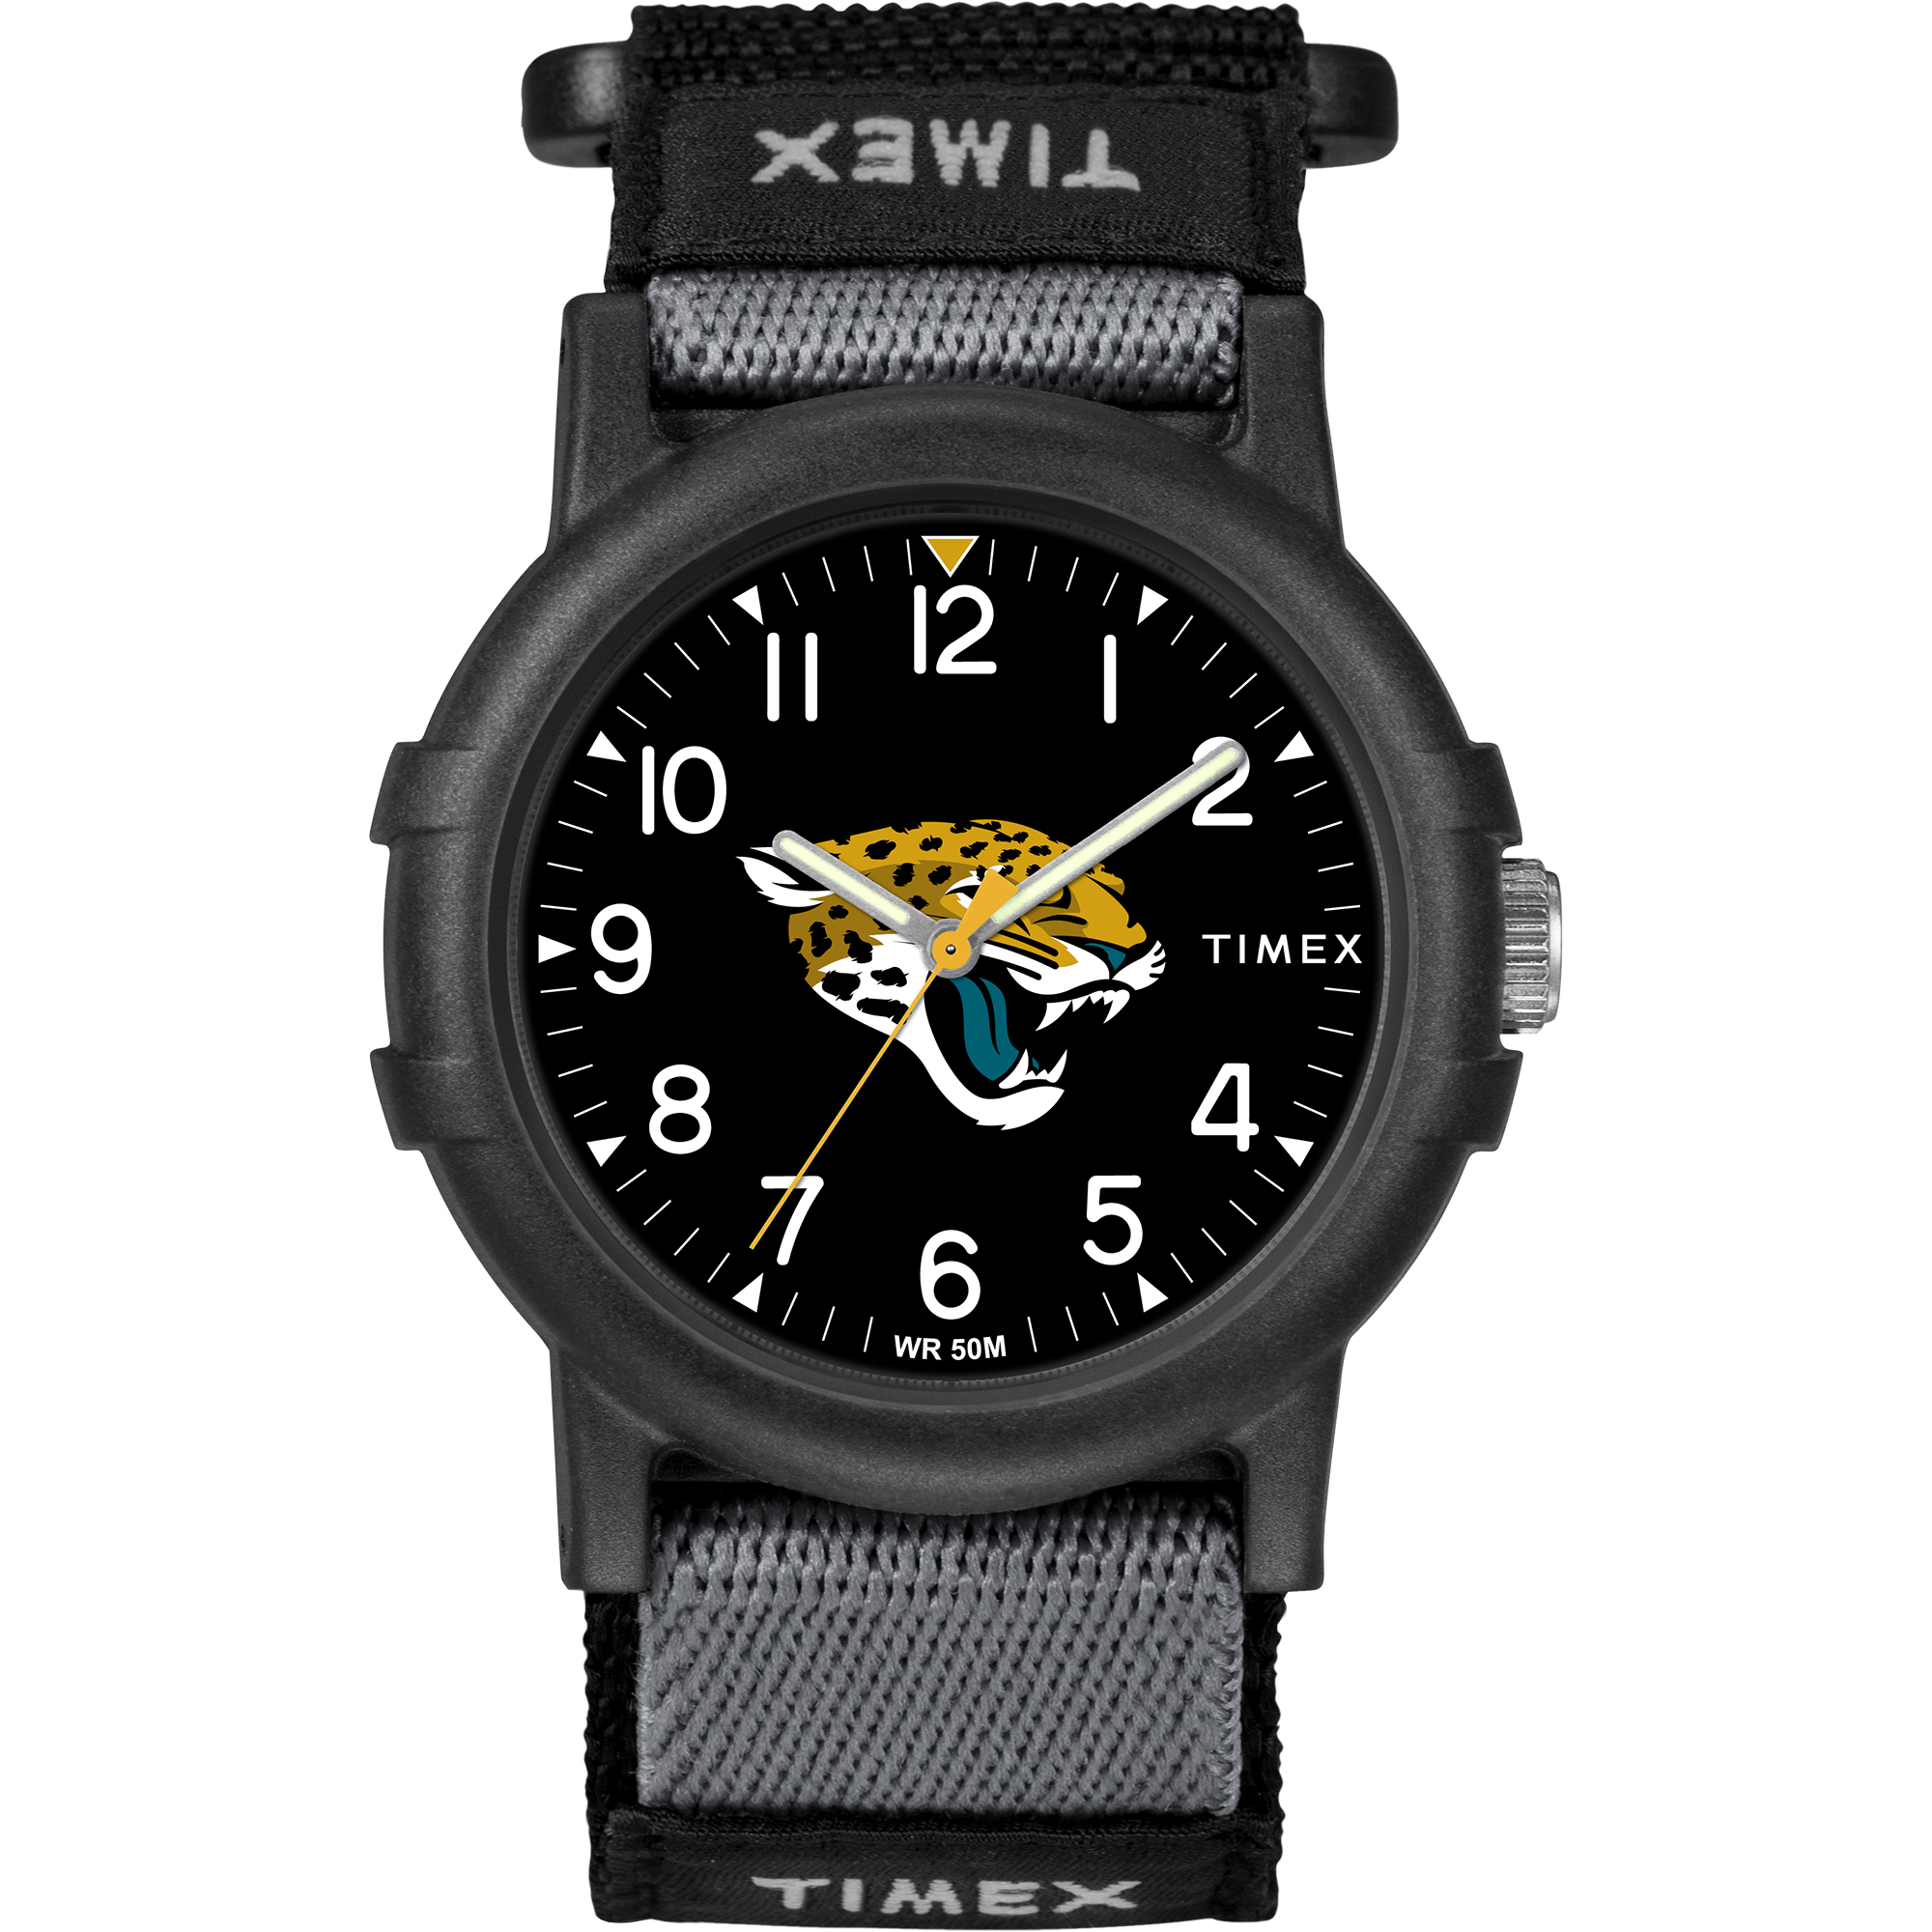 Timex - NFL Tribute Collection Recruite Youth Watch, Jacksonville Jaguars